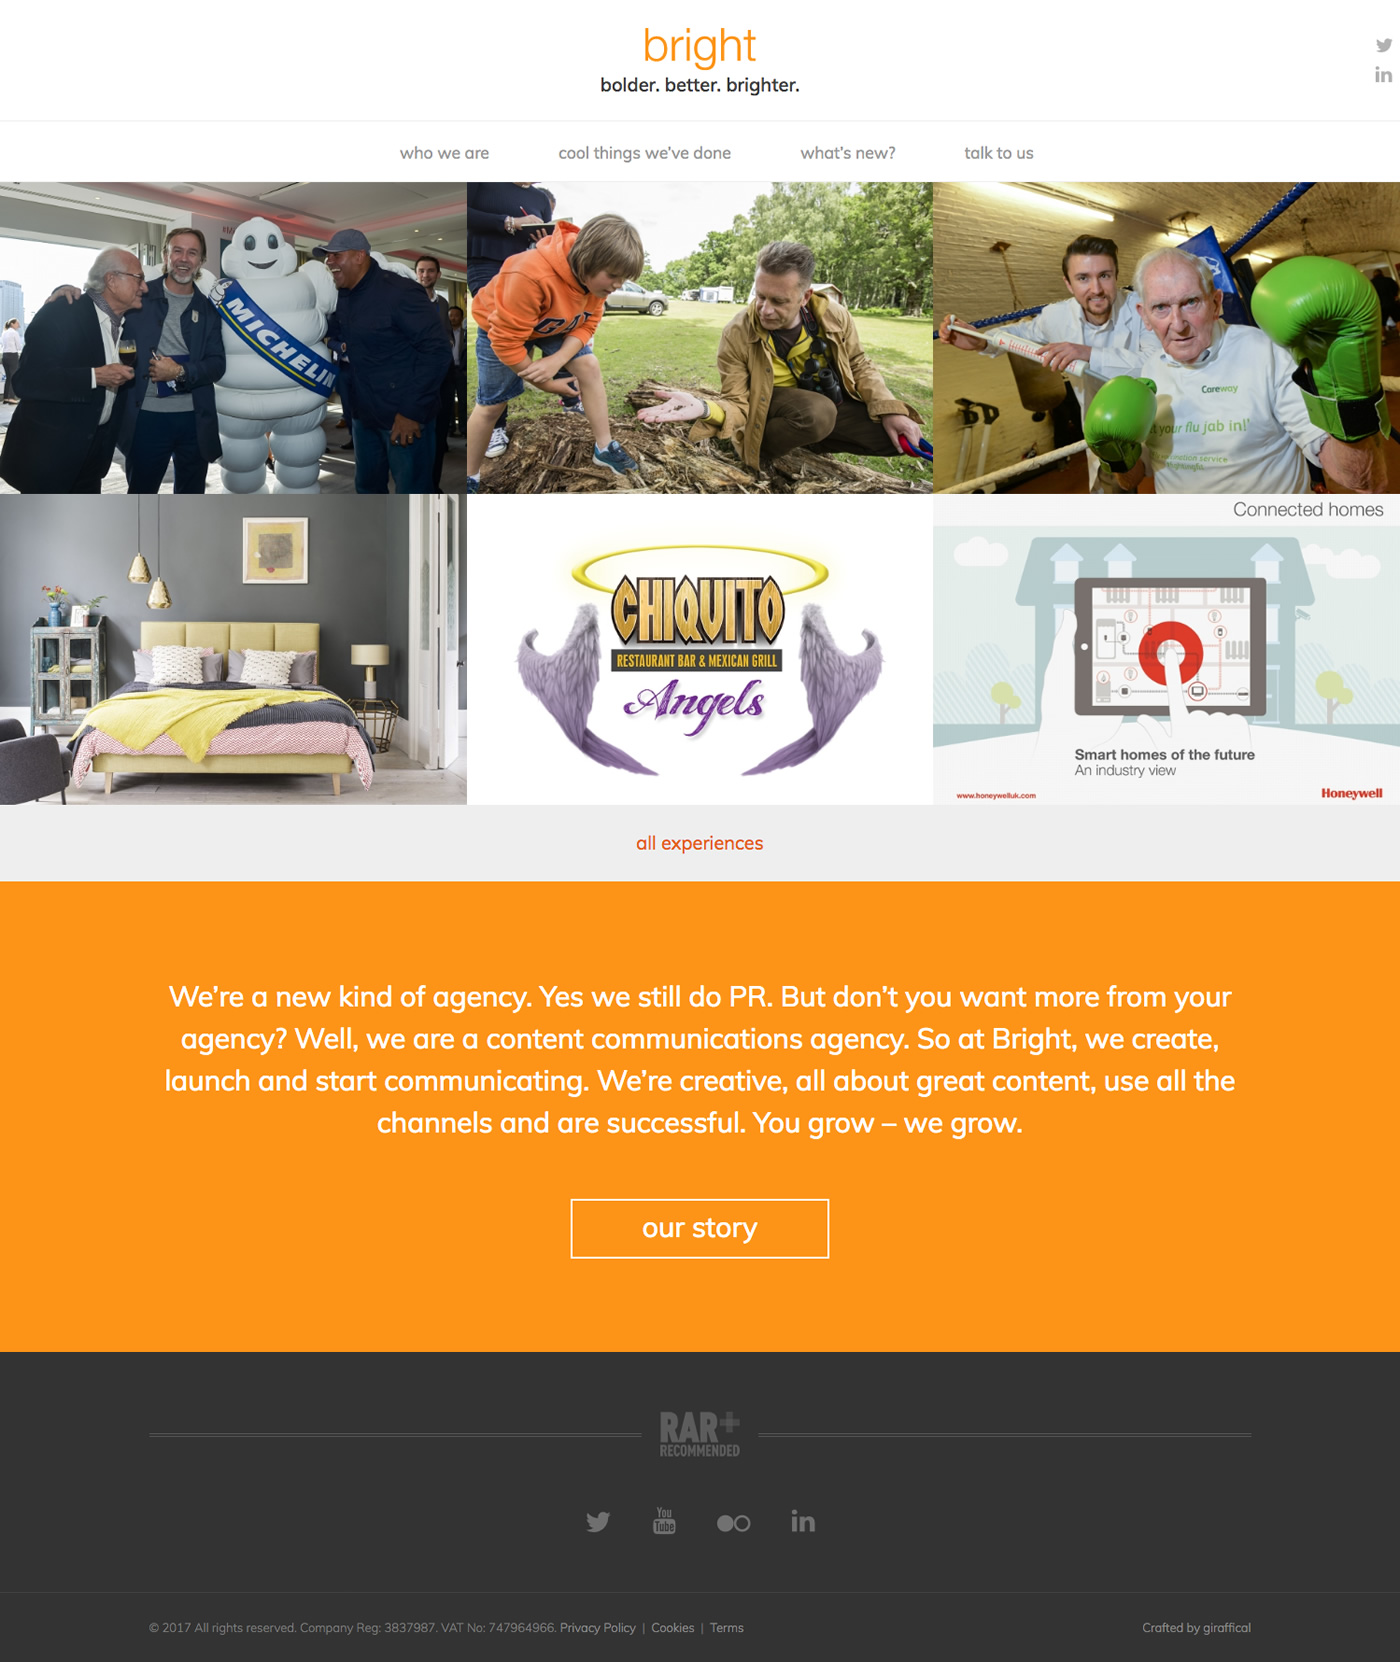 Bright - Redesigned Home Page